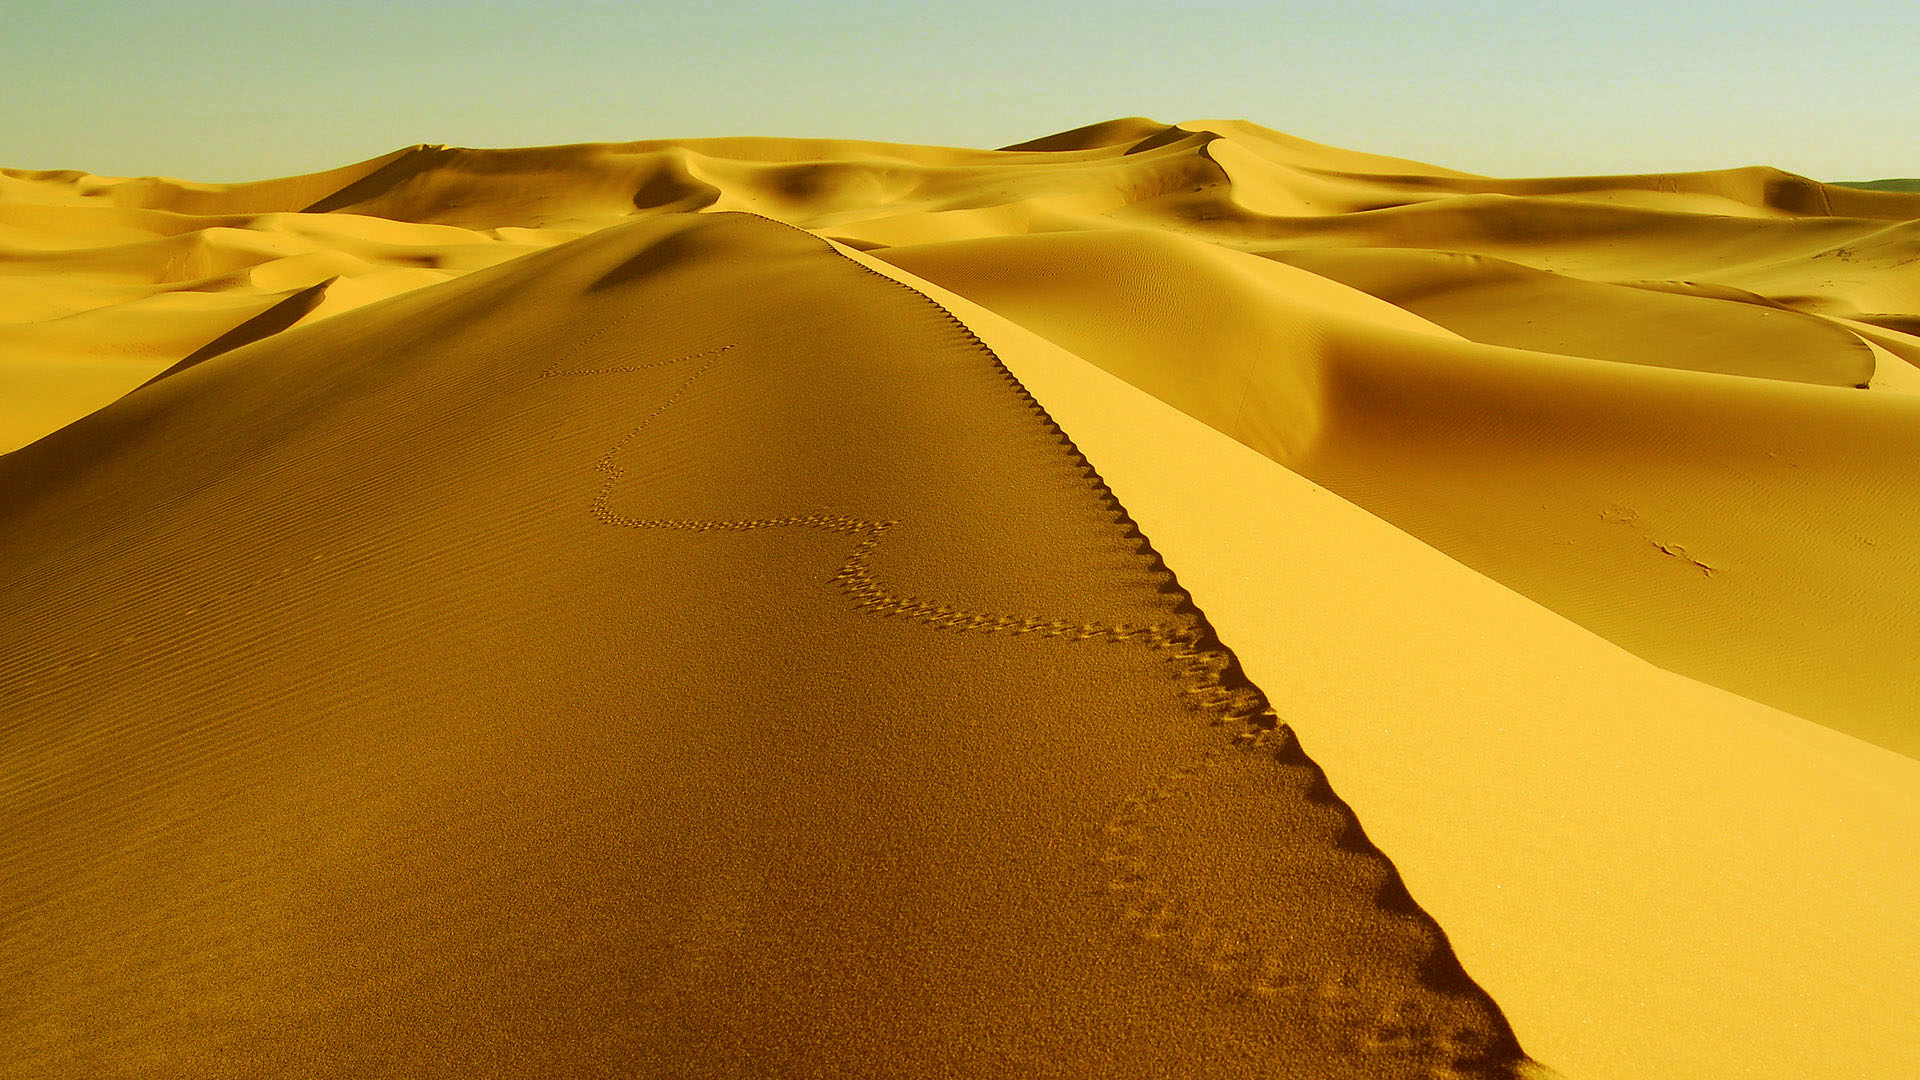 sahara_desert_dunes_wallpaper_hd-HD1-1